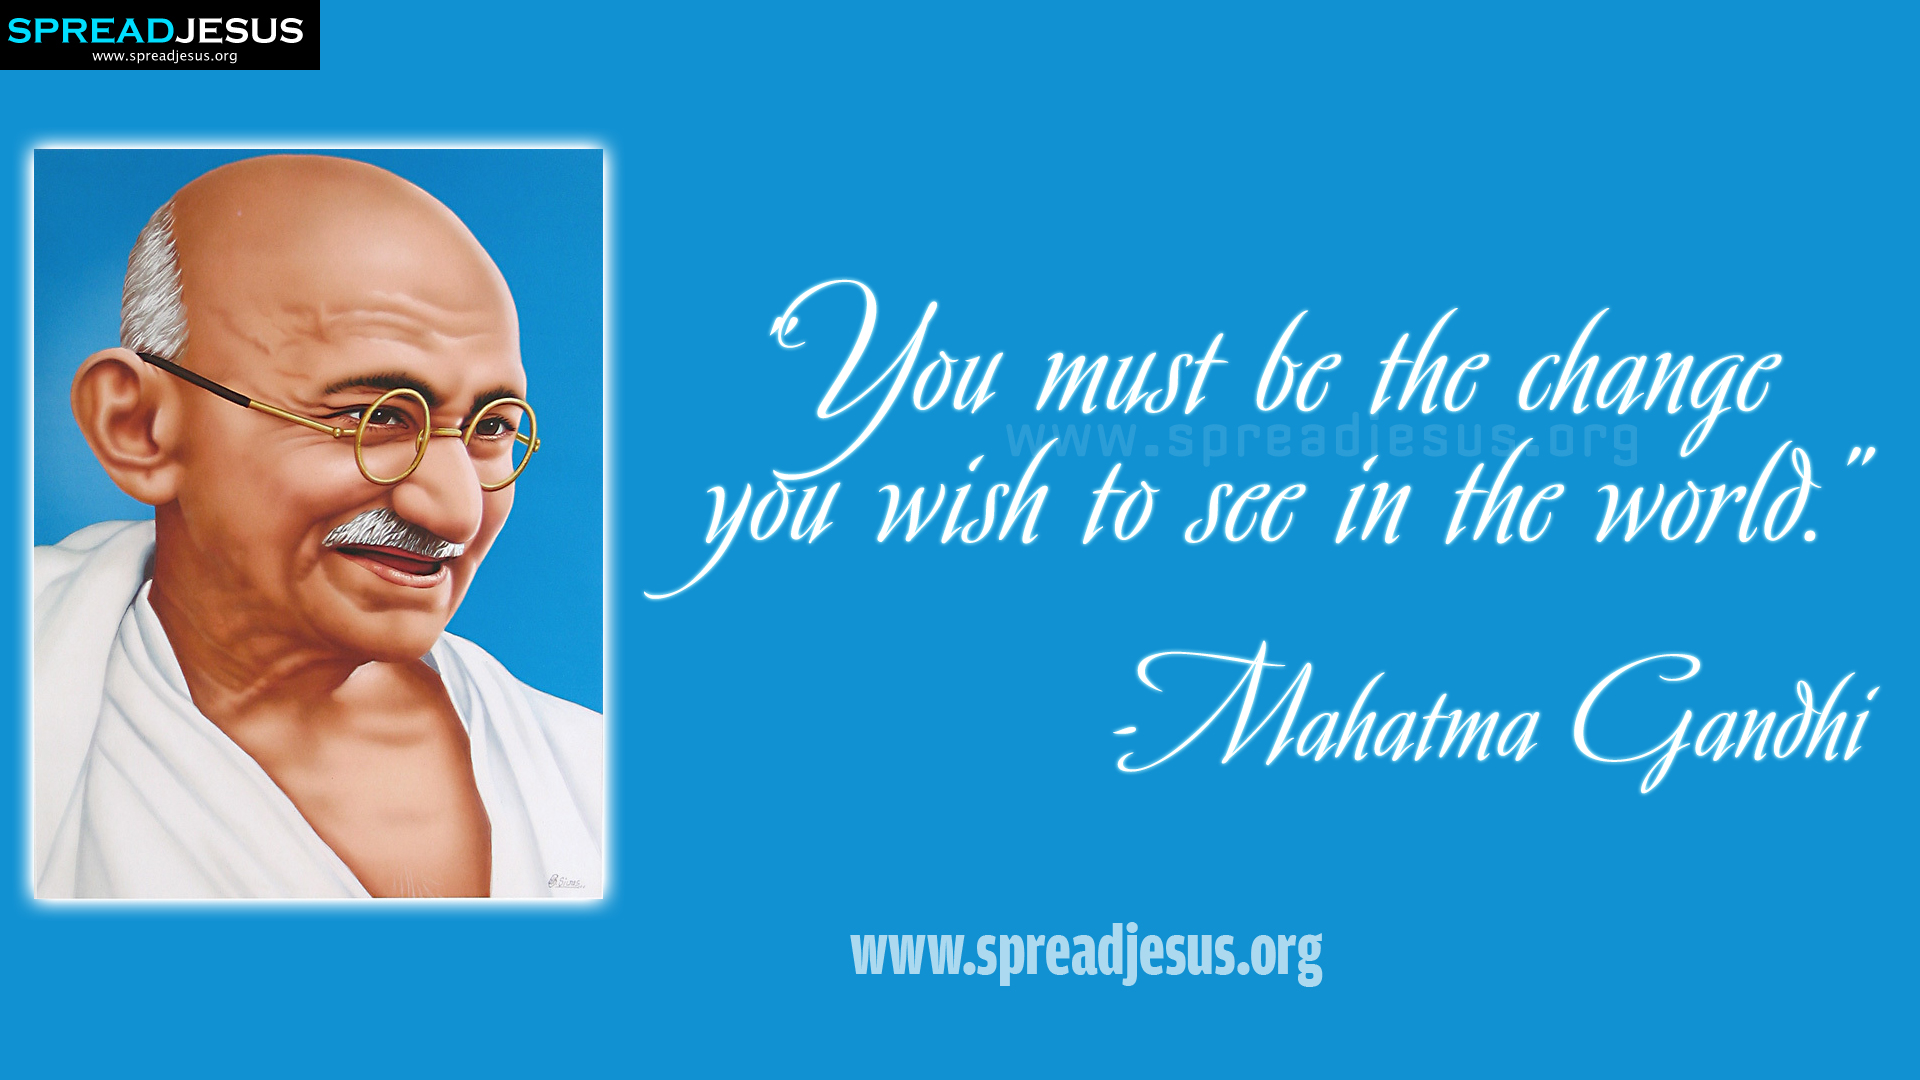 mahatma gandhi inspiring quotes hdwallpapers download